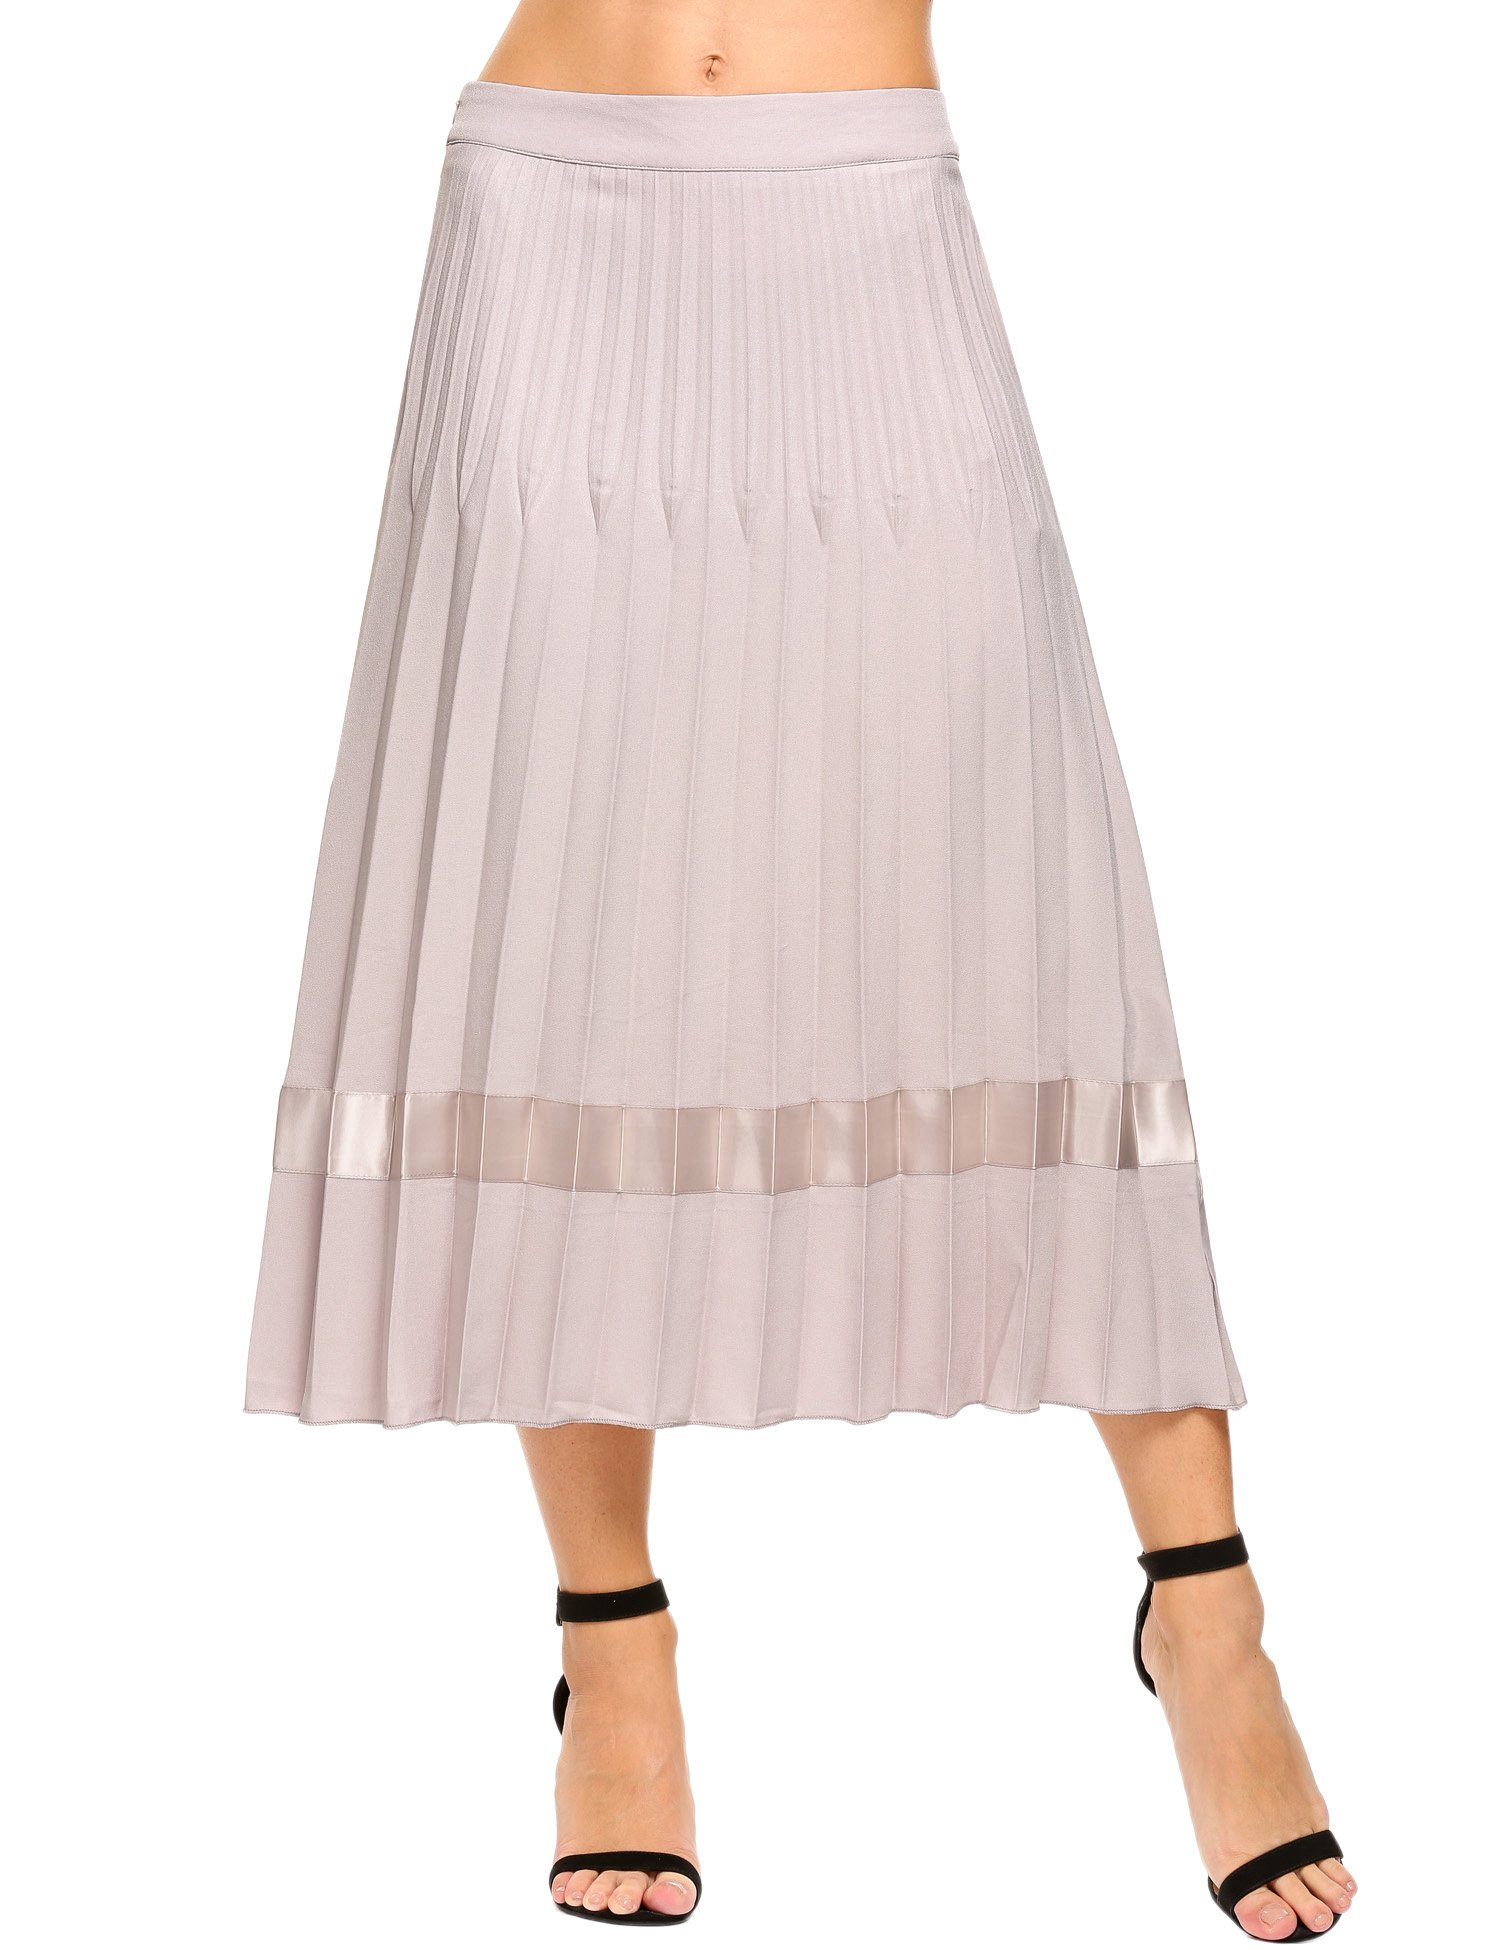 Angvns Women s High Waist Pleated A Line Midi Long Skirt with Pockets Grey Small